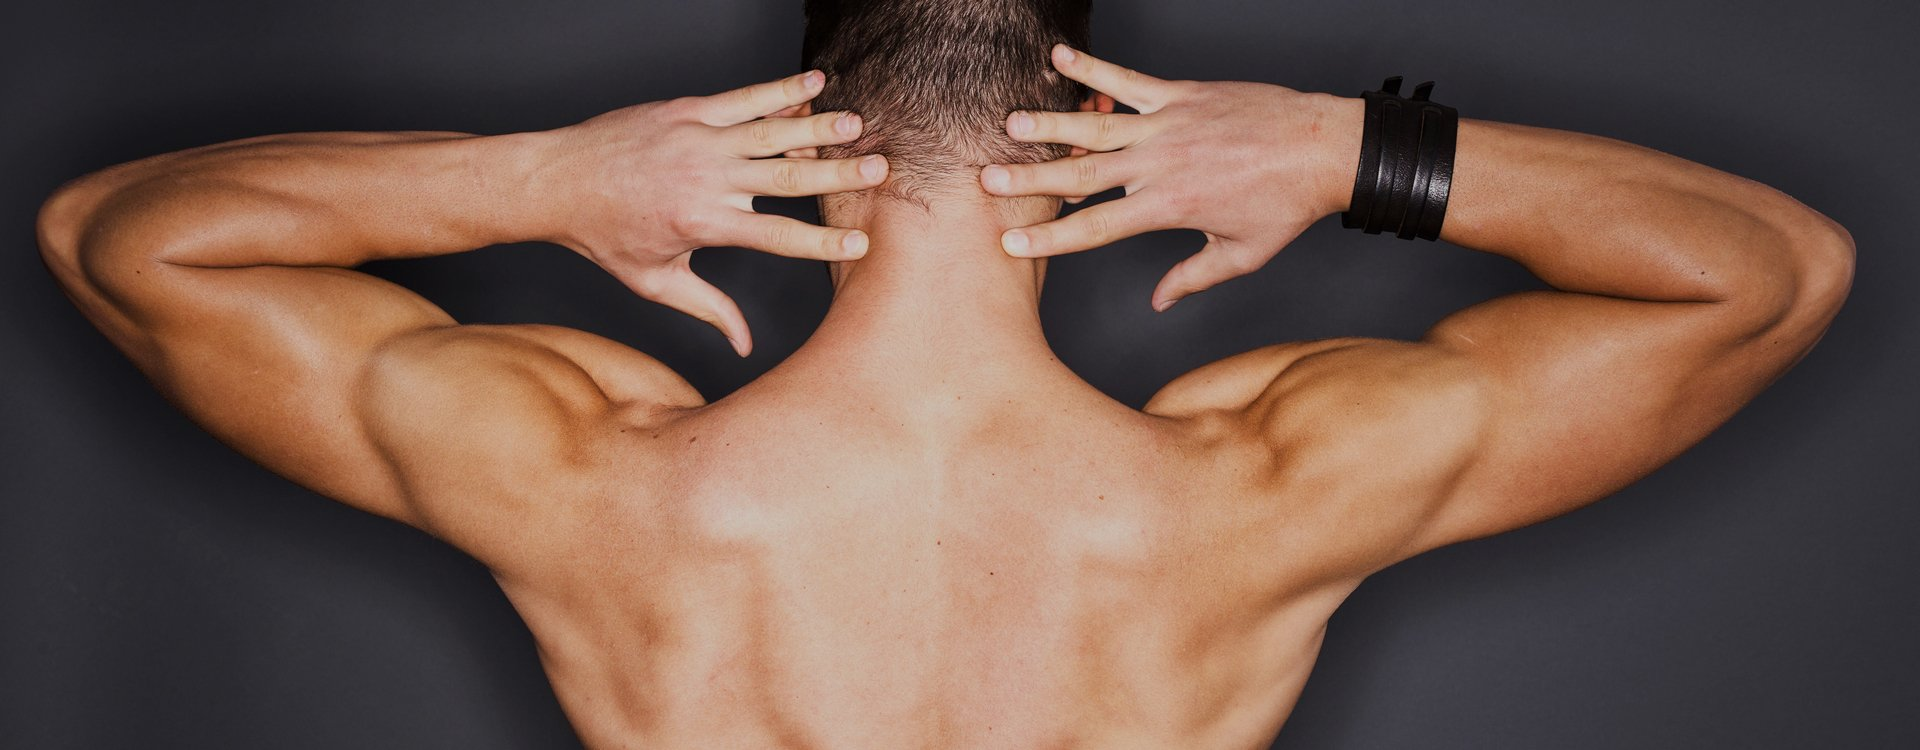 Put Your Back Into Workout Trapezius Muscles